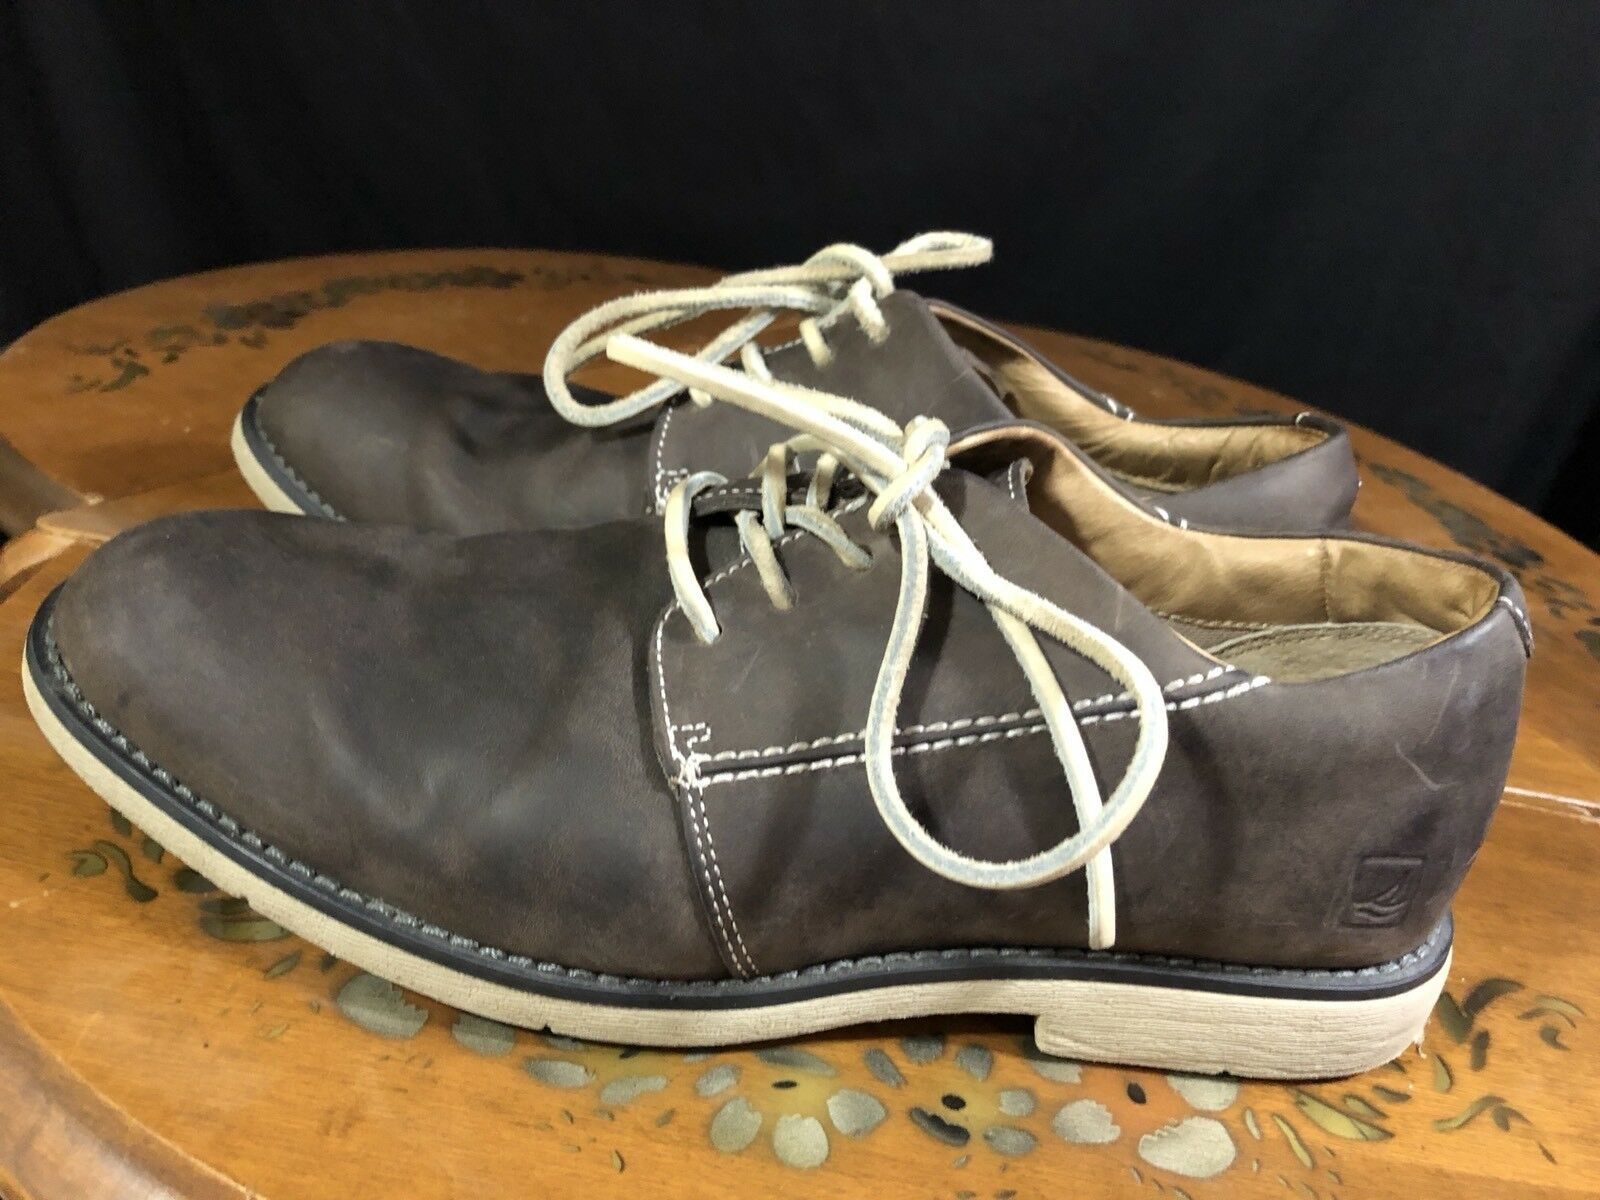 SPERRY TOP-SIDER  Mens shoes Leather Lace Up Loafers Brown Size 7.5 US 0814905